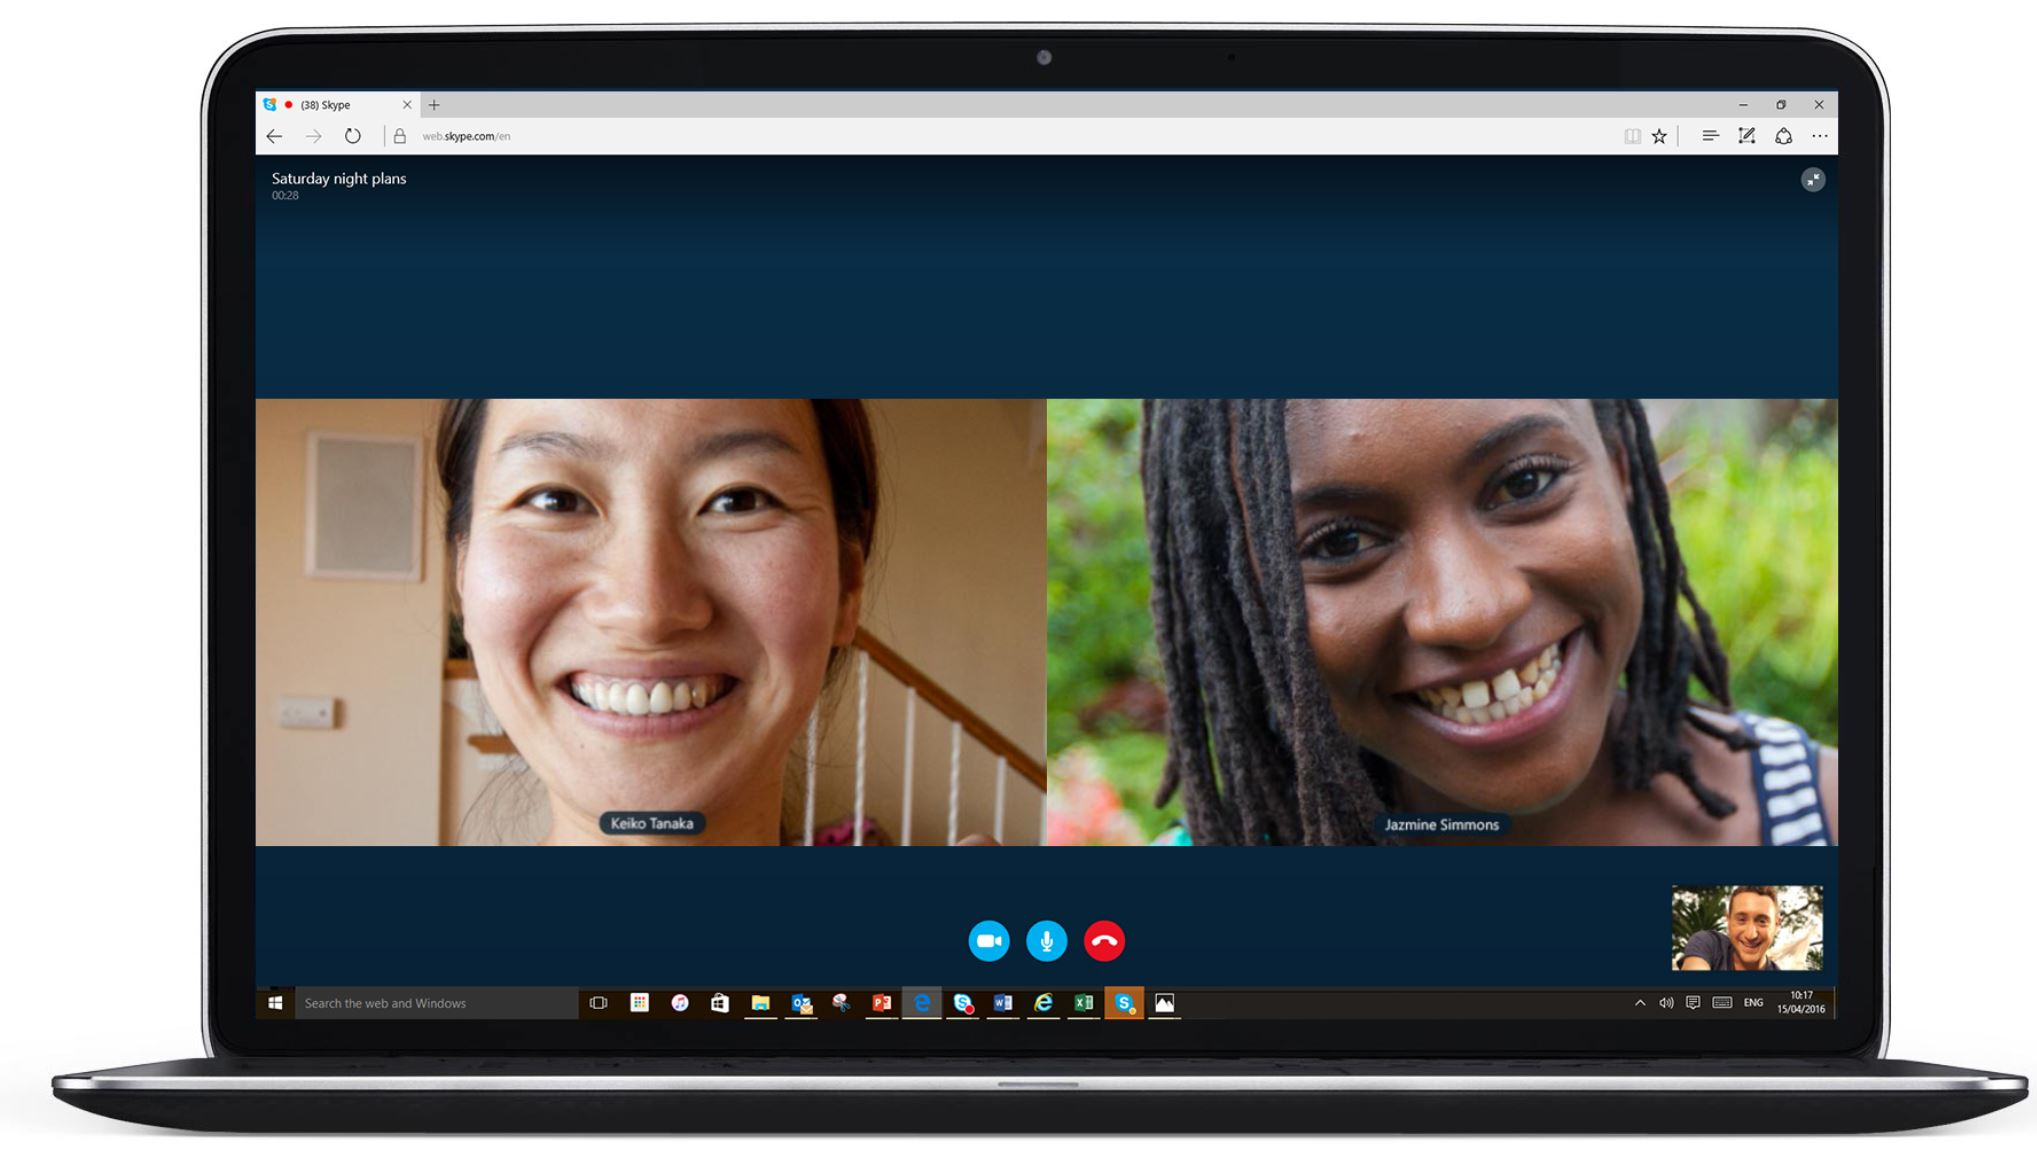 5 apps for making Video calls from your laptop computer